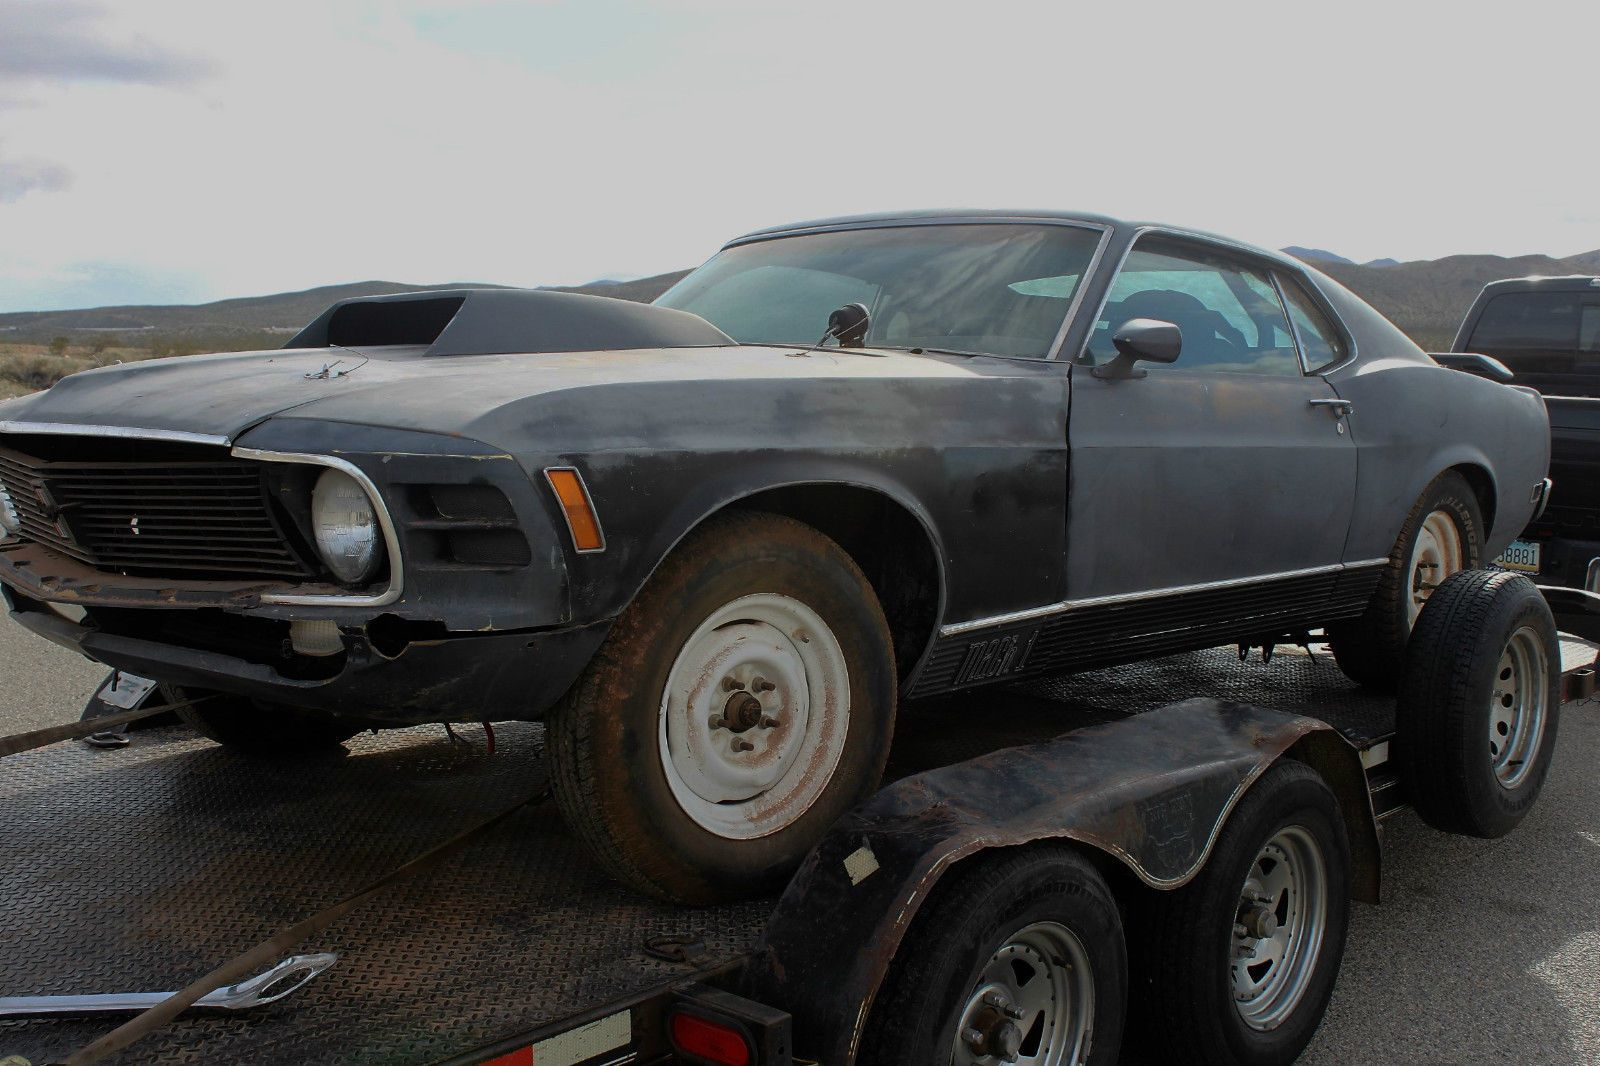 1970 Ford Mustang Mach 1 California Desert car | Salvage cars for ...